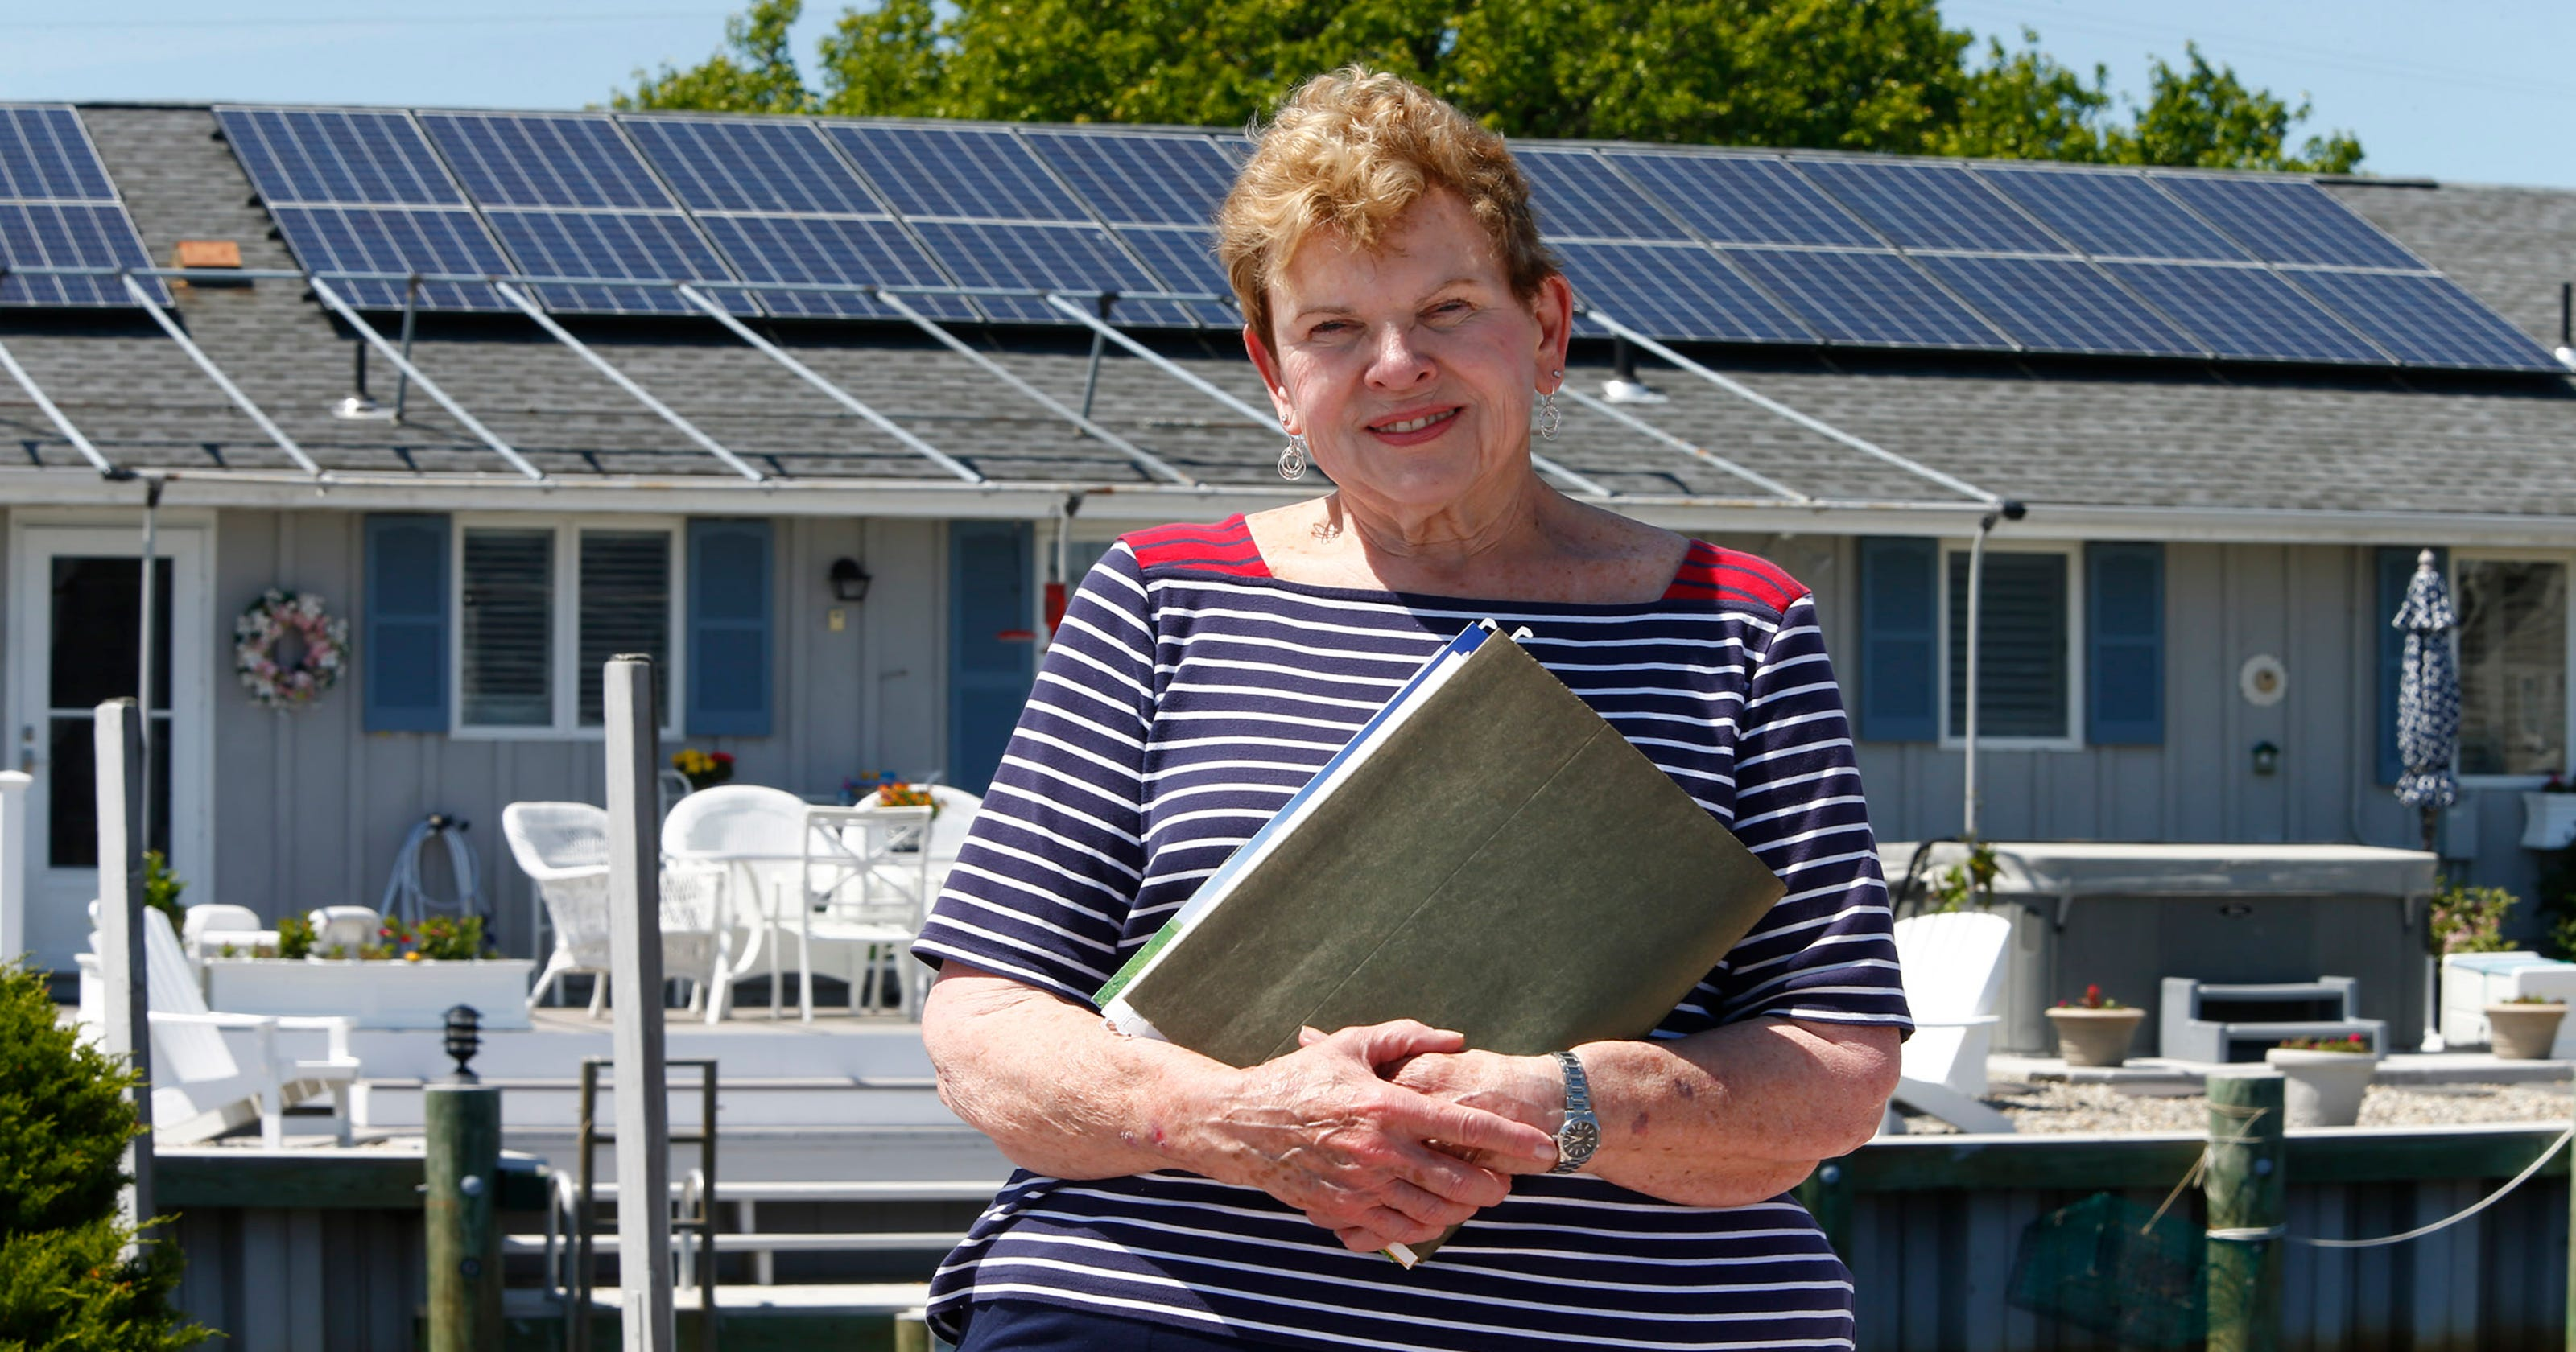 Solar power? This is how to save thousands and avoid getting